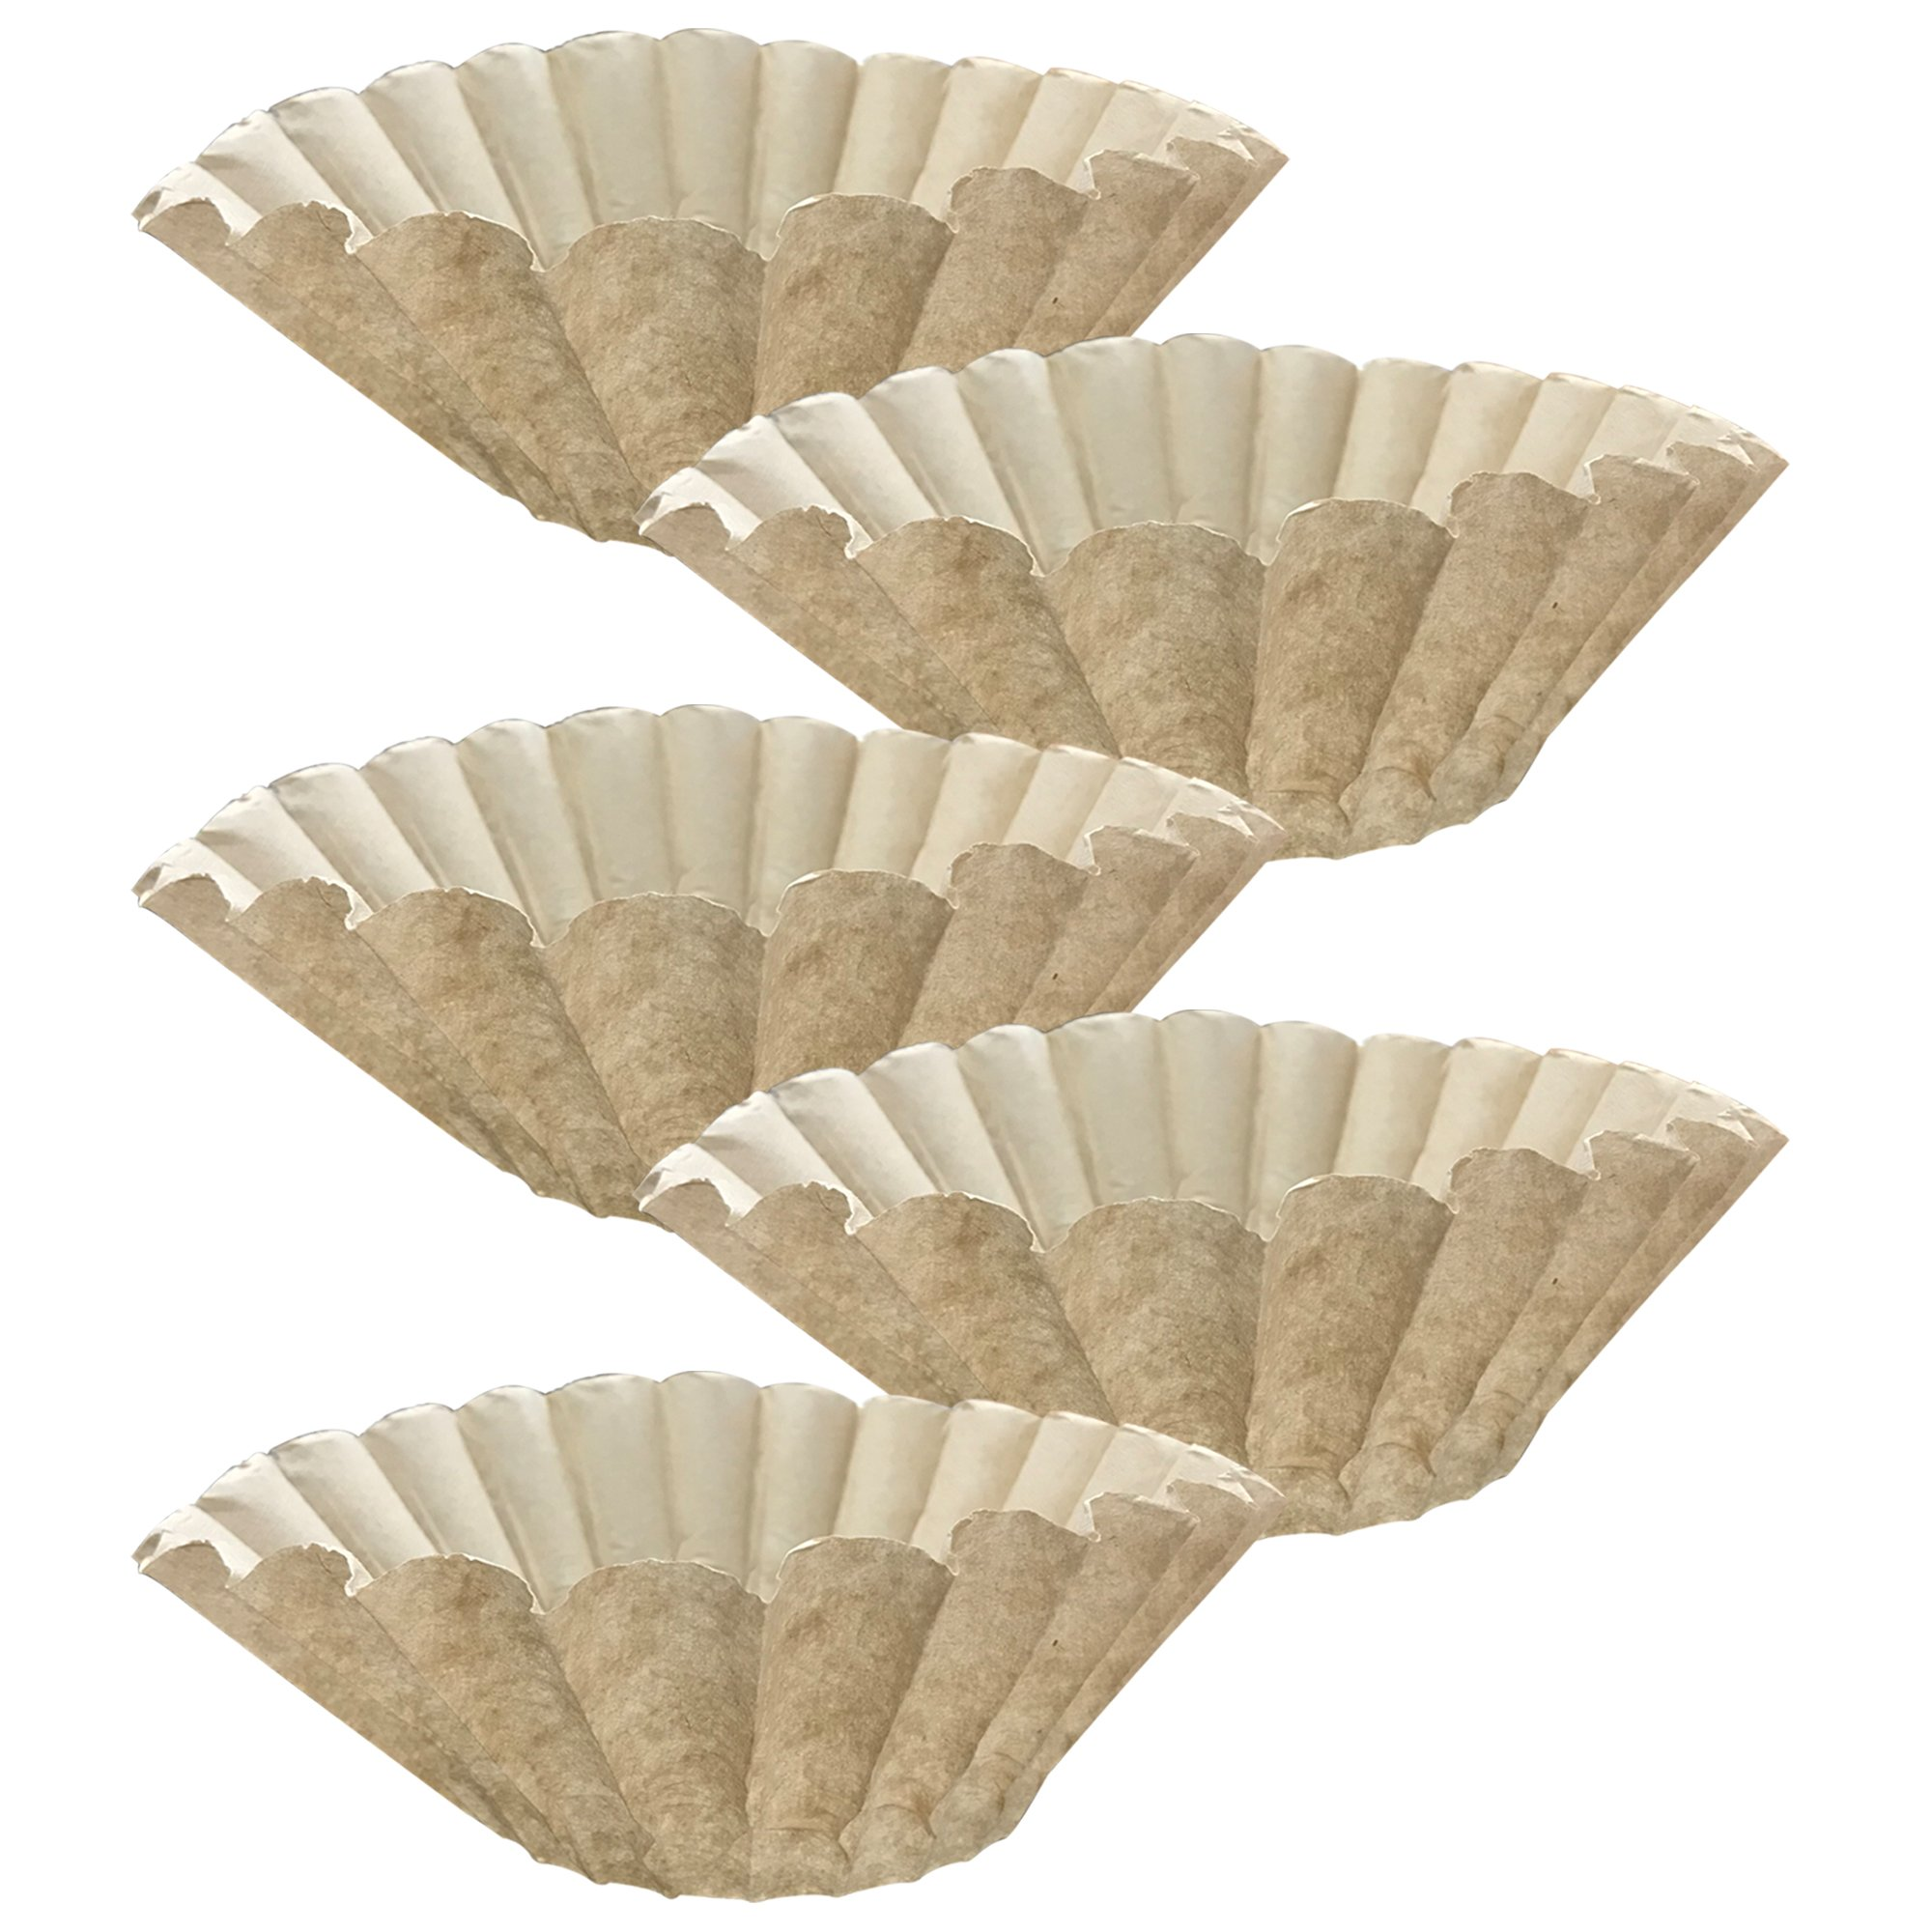 Think Crucial 500PK Replacement for Bunn Unbleached Paper Coffee, Filter Fits 12 Cup Commercial Coffee Brewers, Compatible with Part 1M5002 and 20115.0000, by Think Crucial